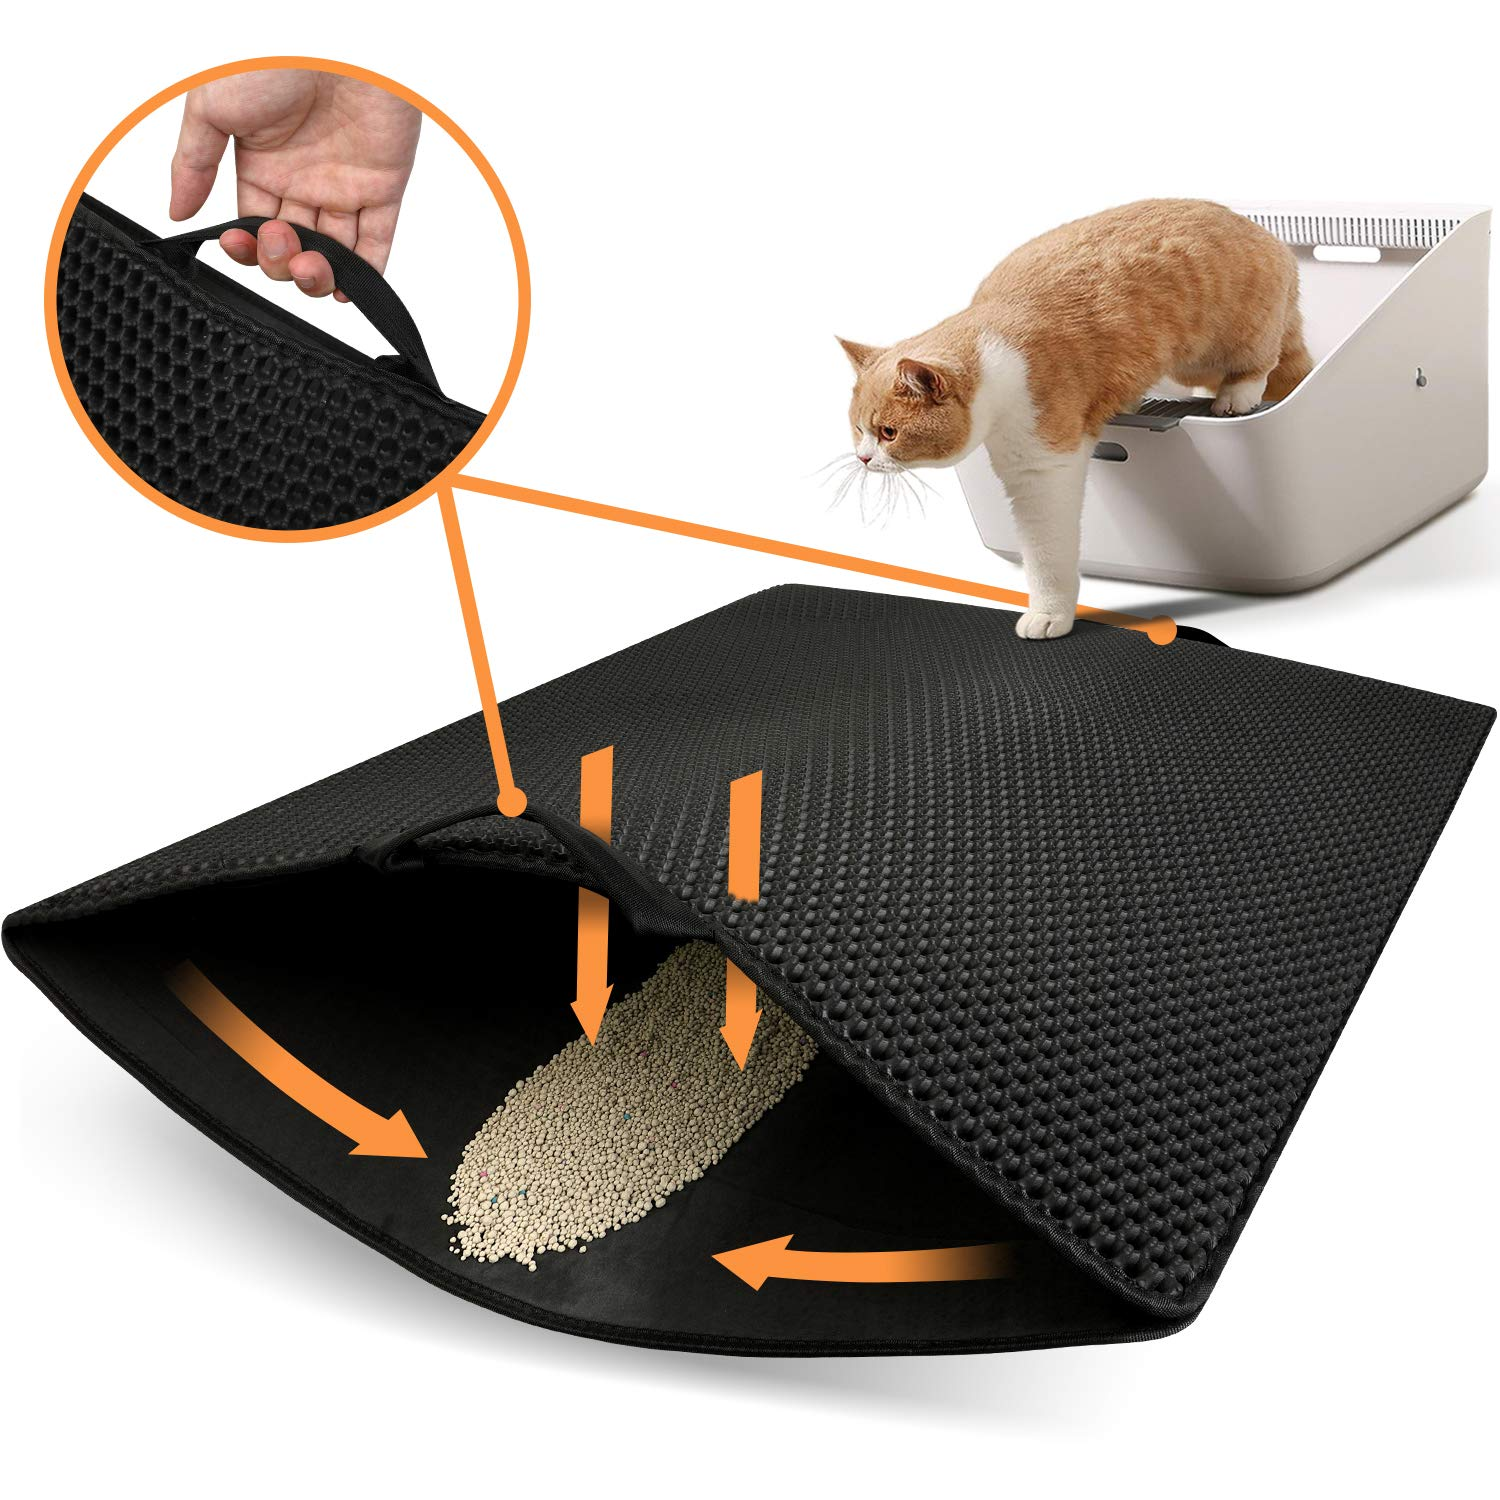 Polarduck Cat Litter Mat, 32'' X 25'', Cat Litter Trapping Mat Extra Large, Honeycomb Double Layer Design, Urine and Water Proof Material, Special Side Handles Design Easier to Clean, Washable by Polarduck